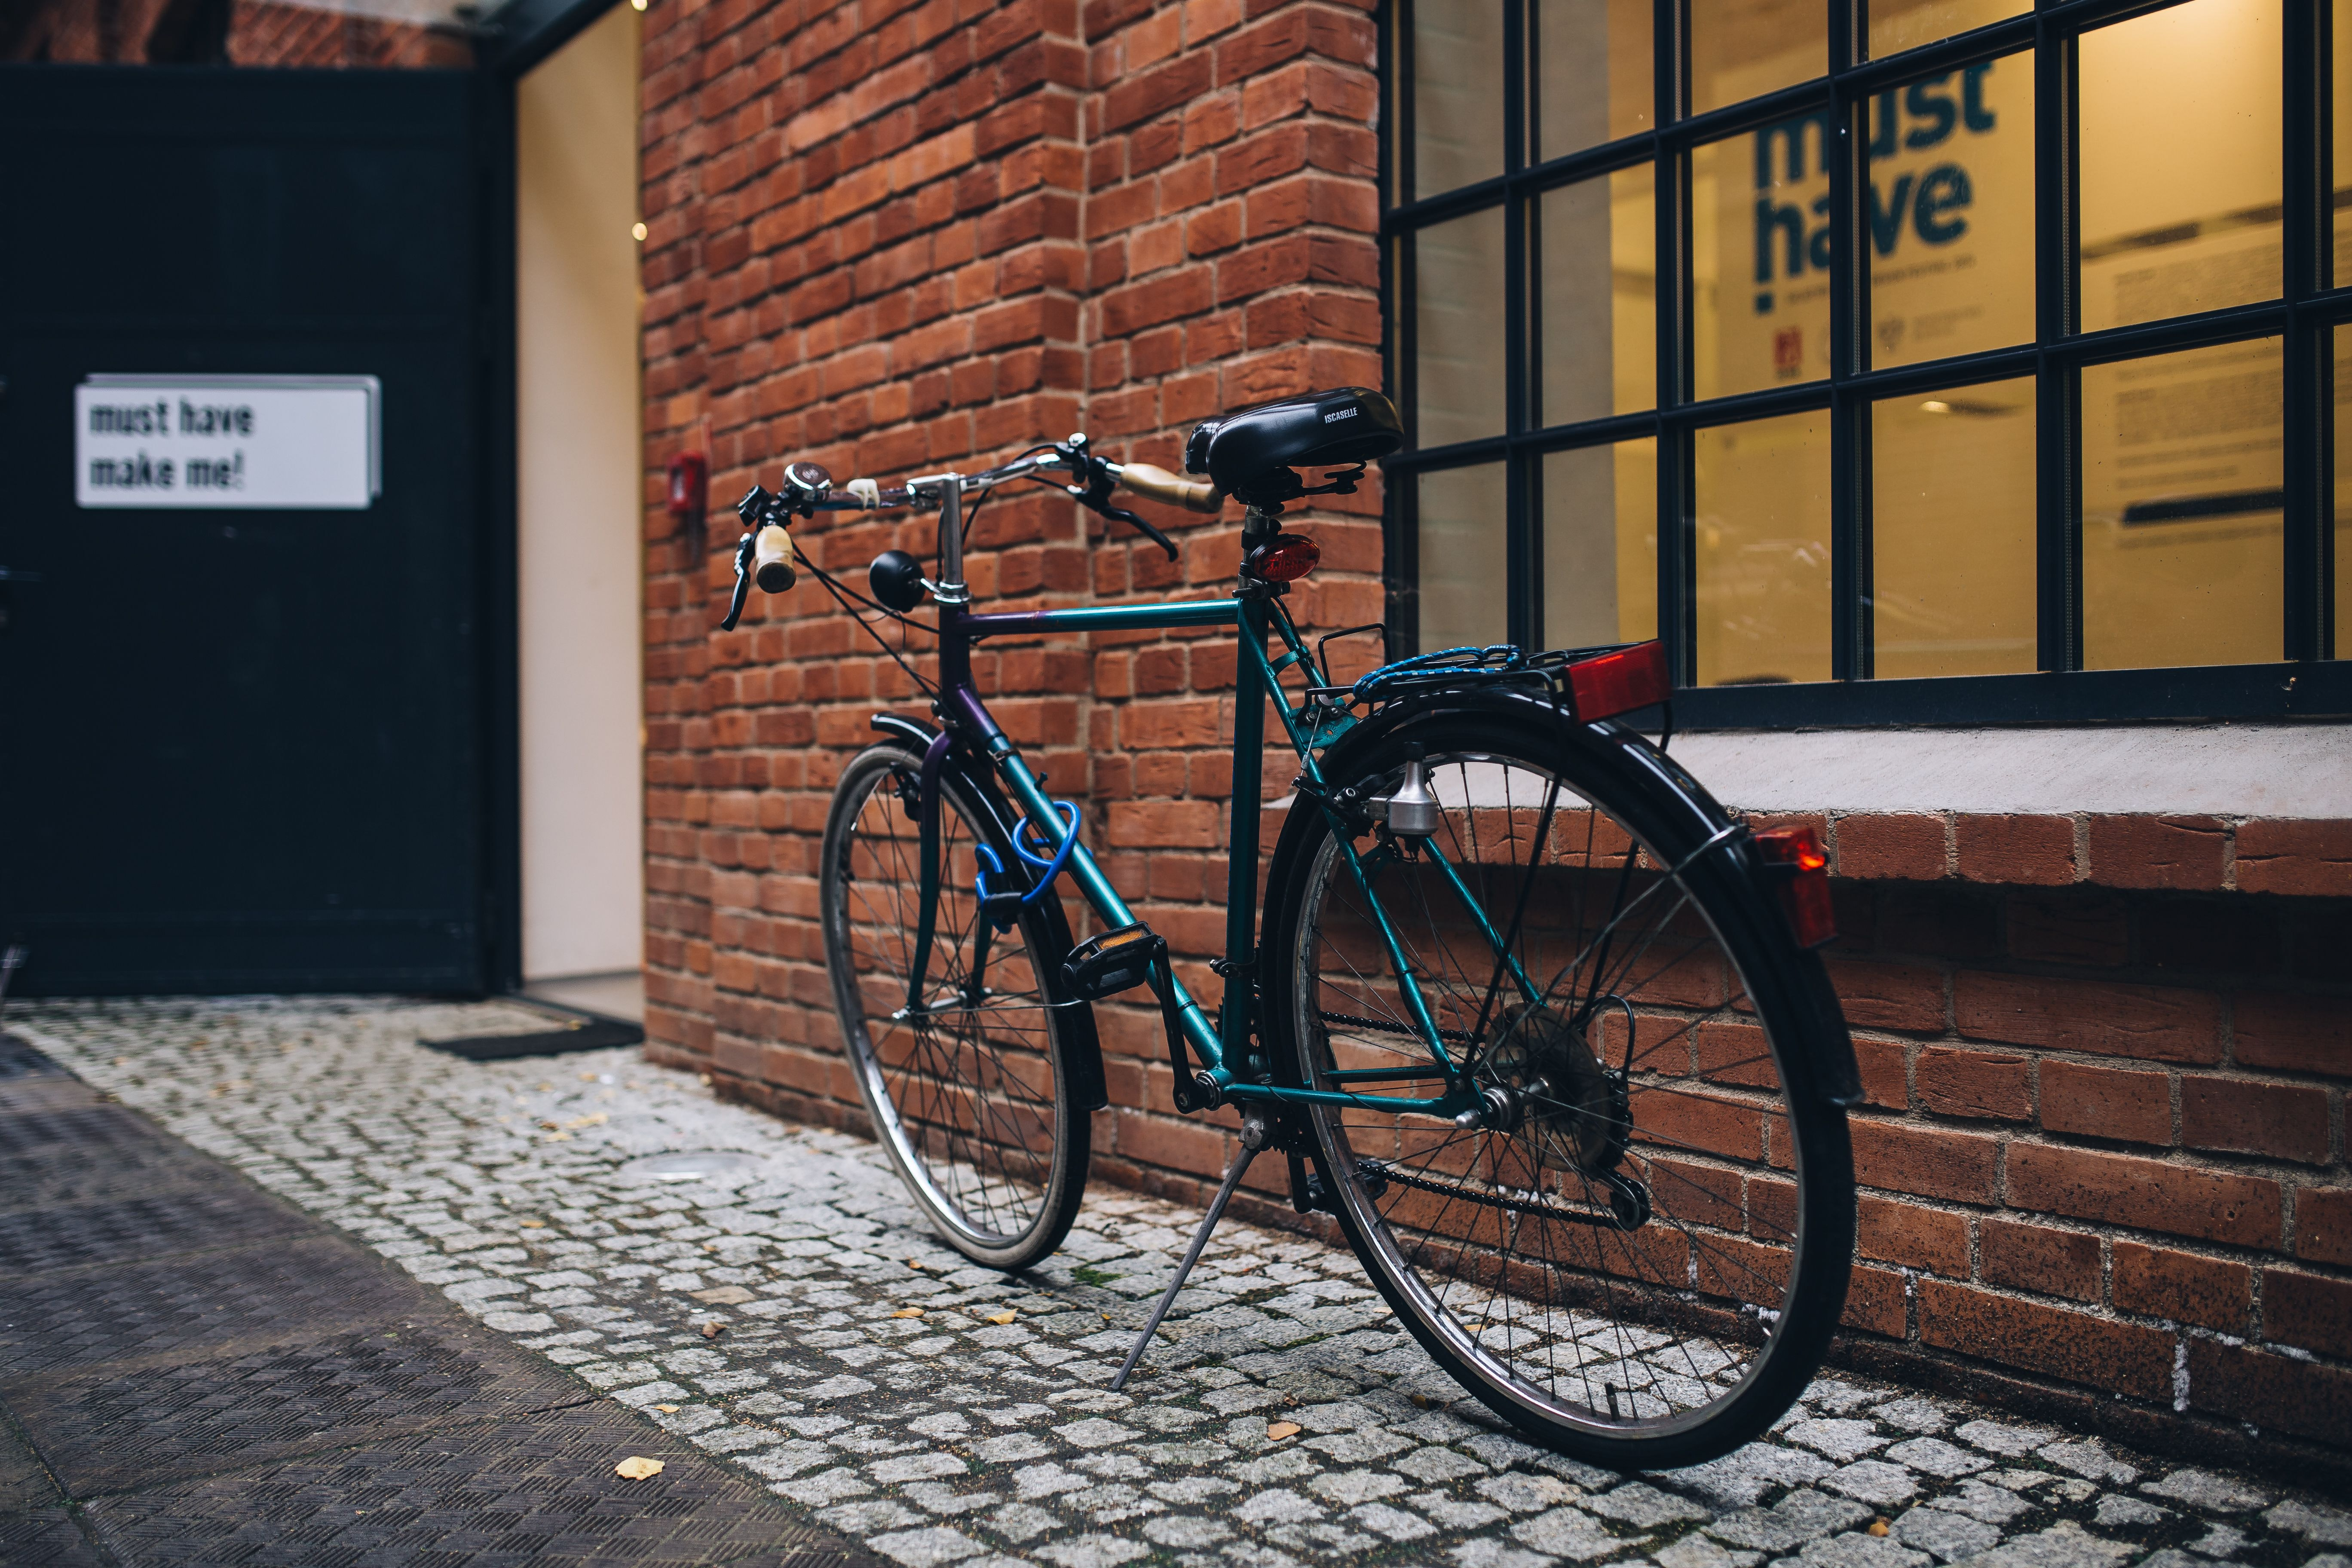 black and blue bicycle parked near a glass window at daytime